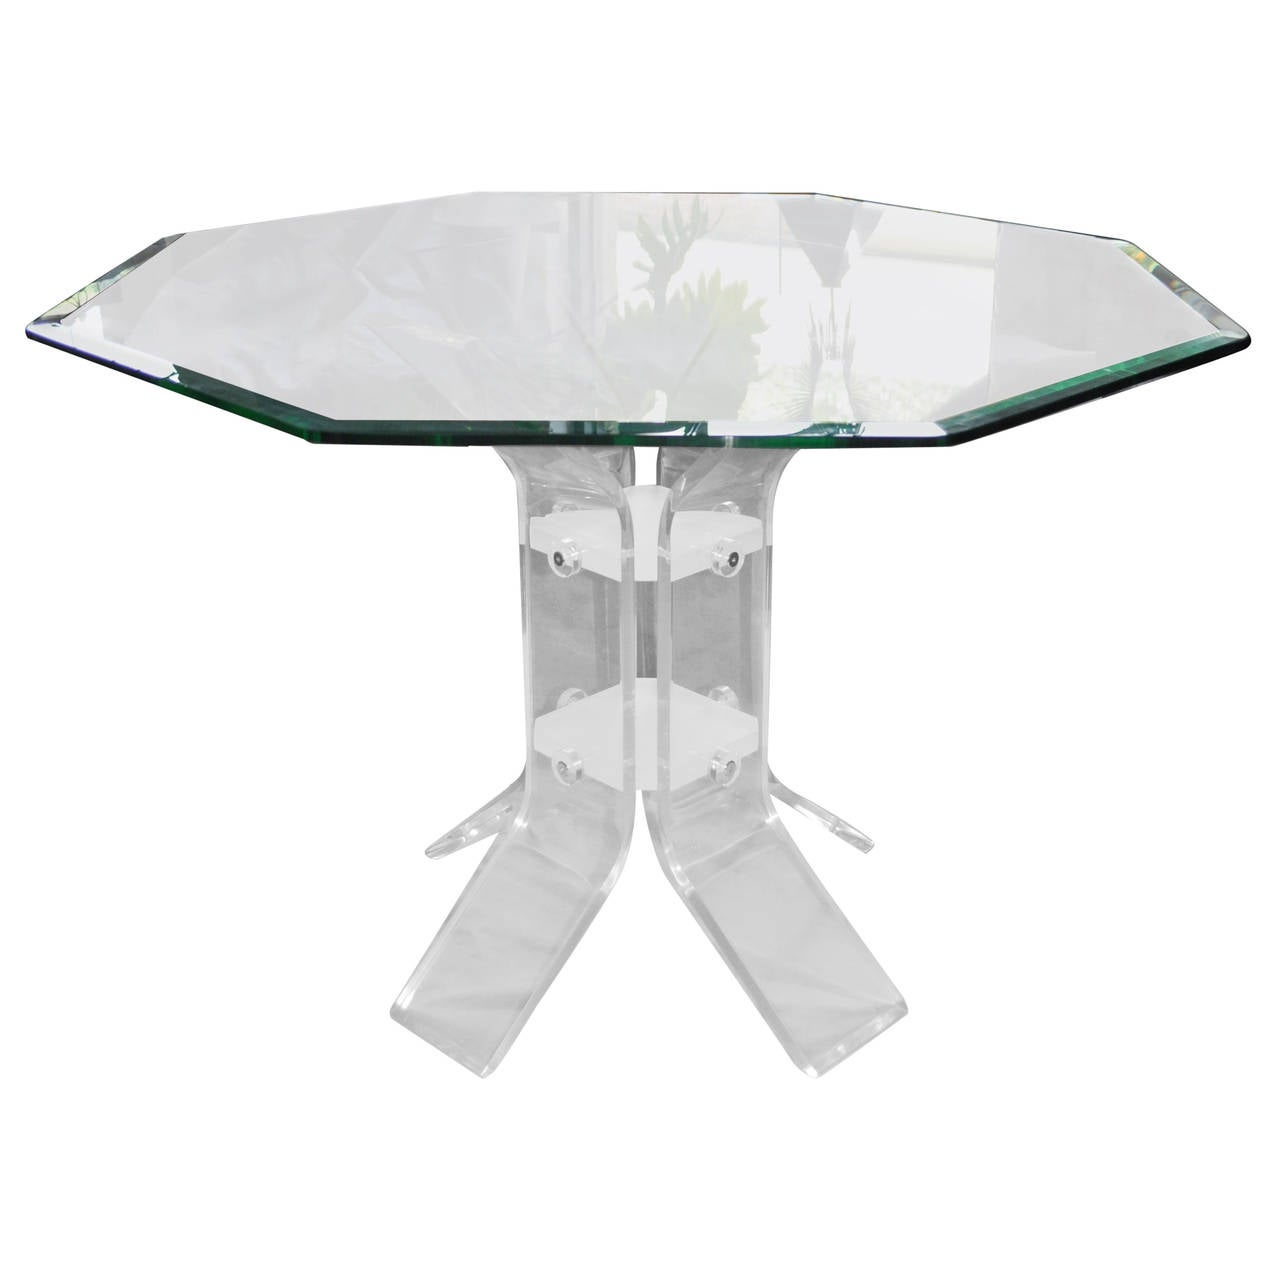 Sculptural Lucite Dining Table with Octagonal Glass Top at